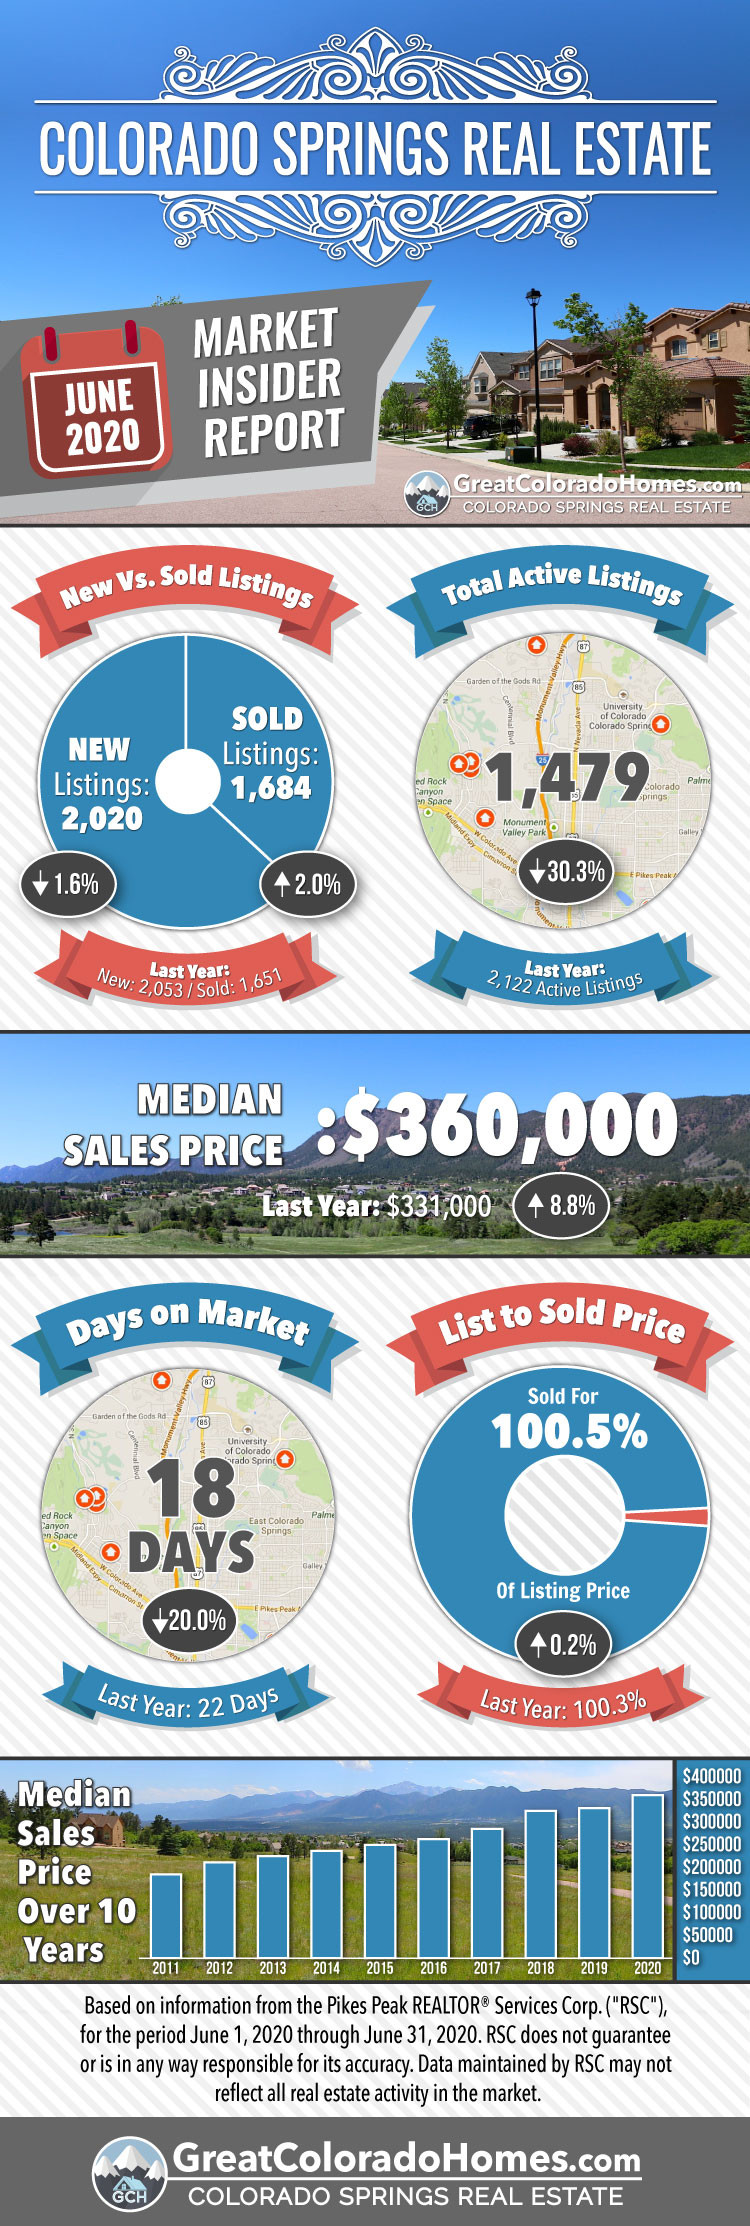 June 2020 Colorado Springs Real Estate Market Statistics Infographic